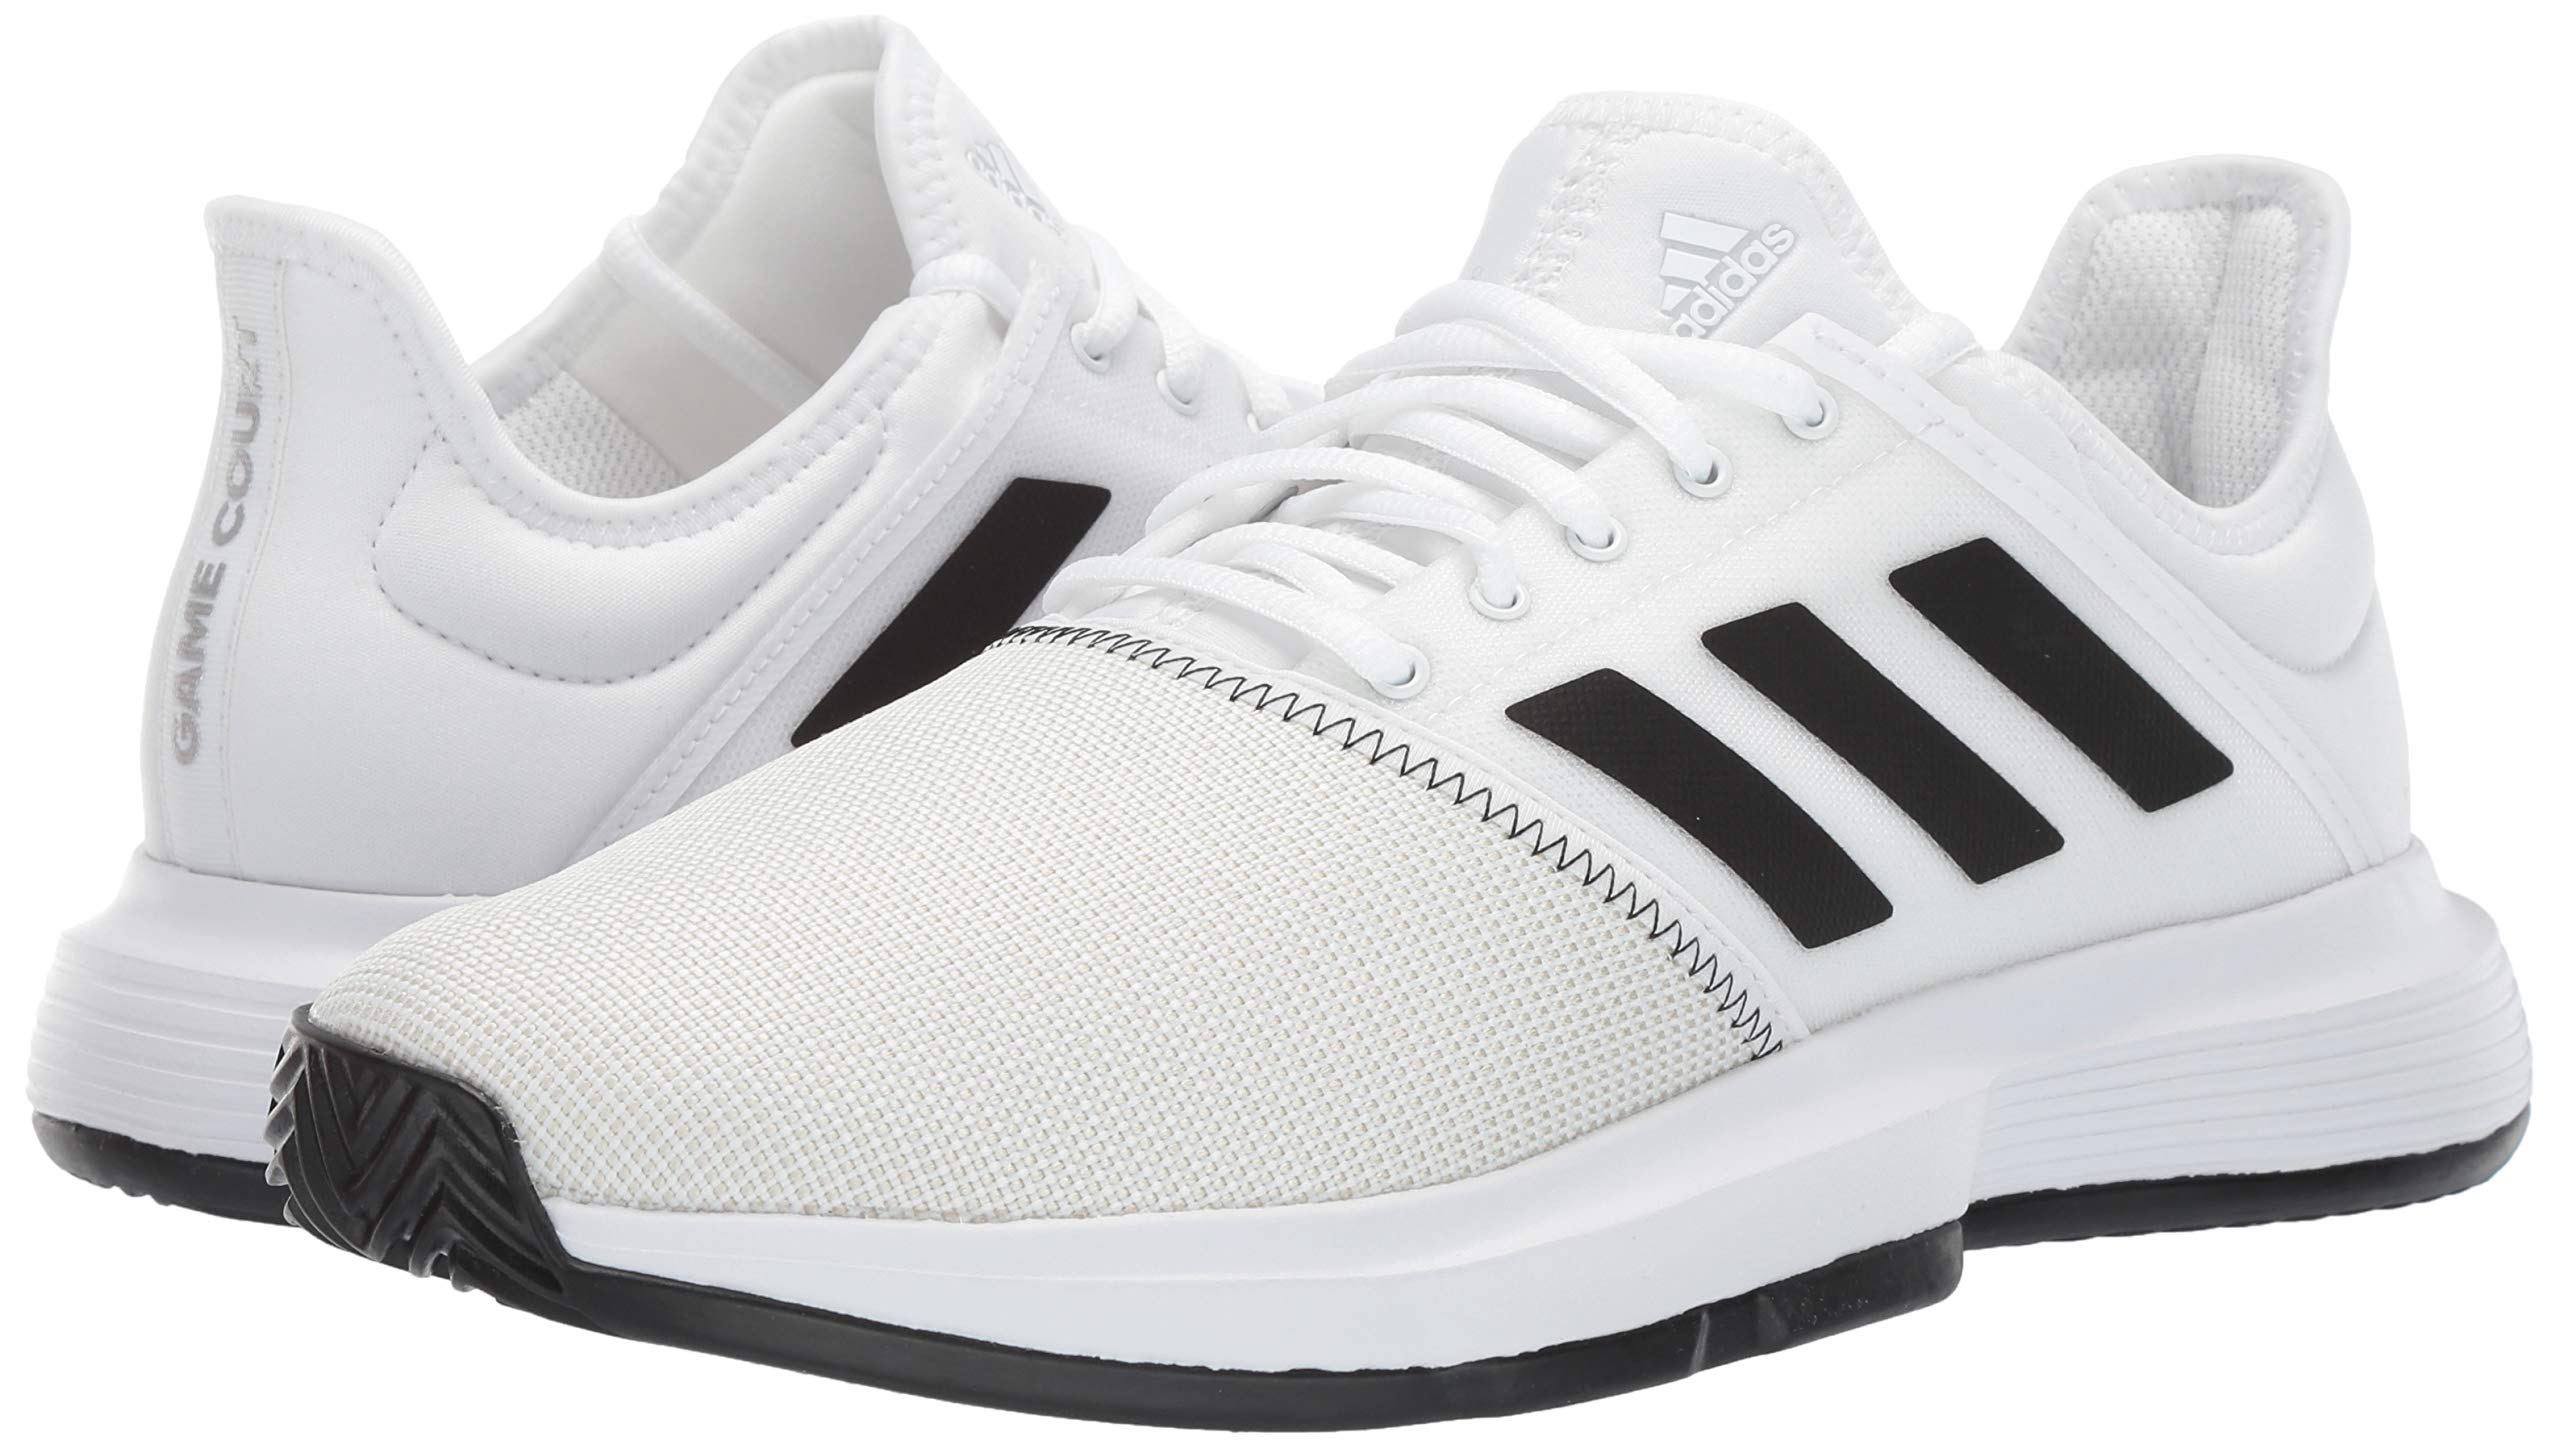 adidas Men's Gamecourt, White/Black/Grey 6.5 M US by adidas (Image #6)